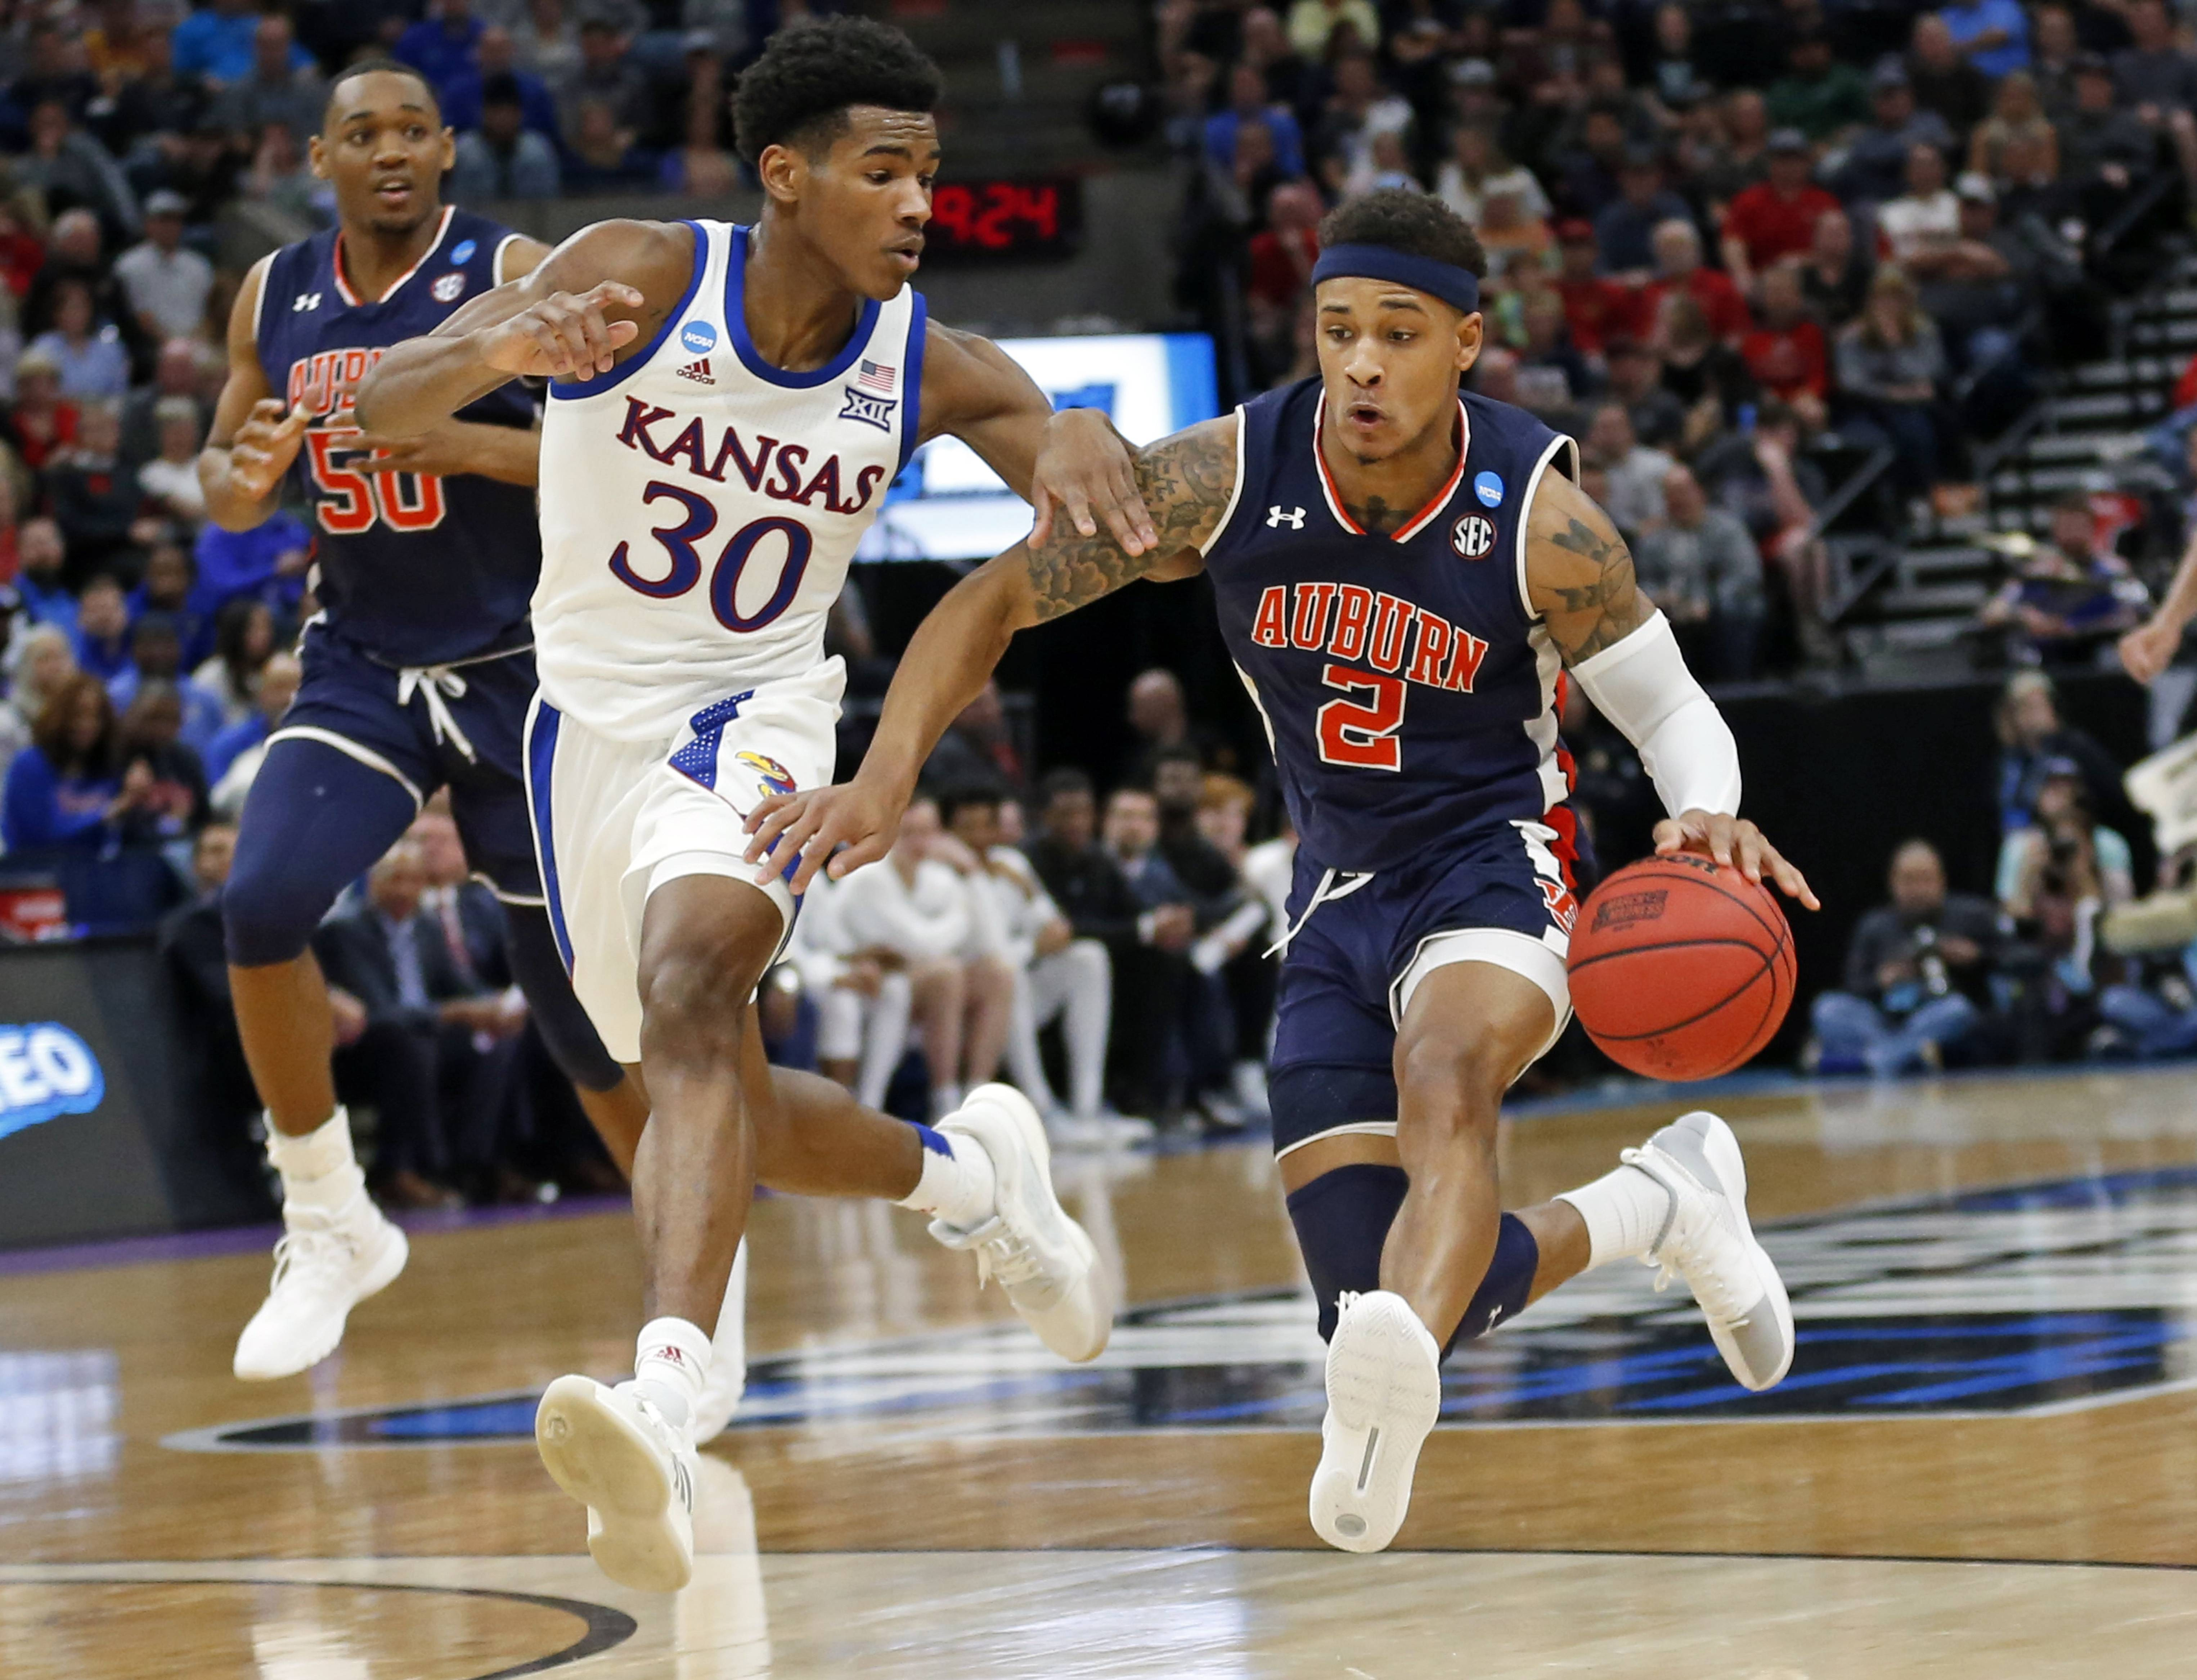 Auburn guard Bryce Brown (2) brings the ball up court as Kansas guard Ochai Agbaji (30) defends Saturday during the second half of a NCAA Tournament game in Salt Lake City.